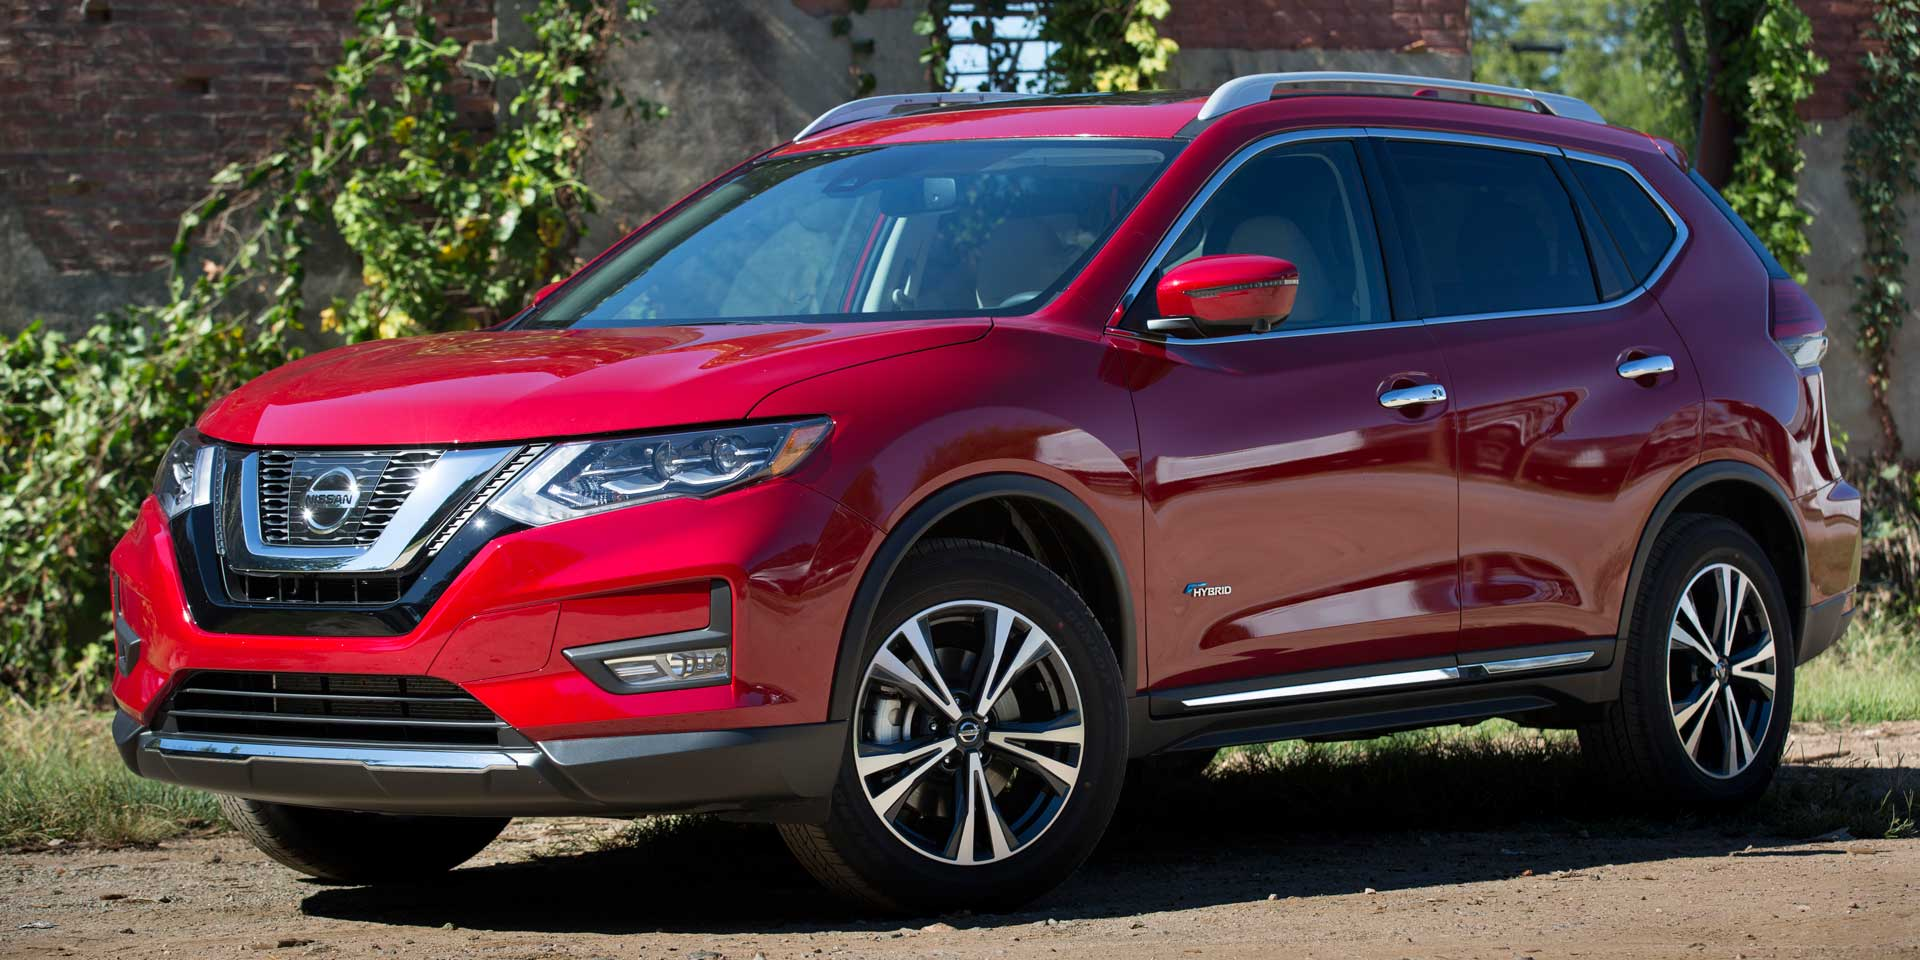 2017 Nissan Rogue The Is Refreshed And It Adds New Tech Features A Newly Available Hybrid Train